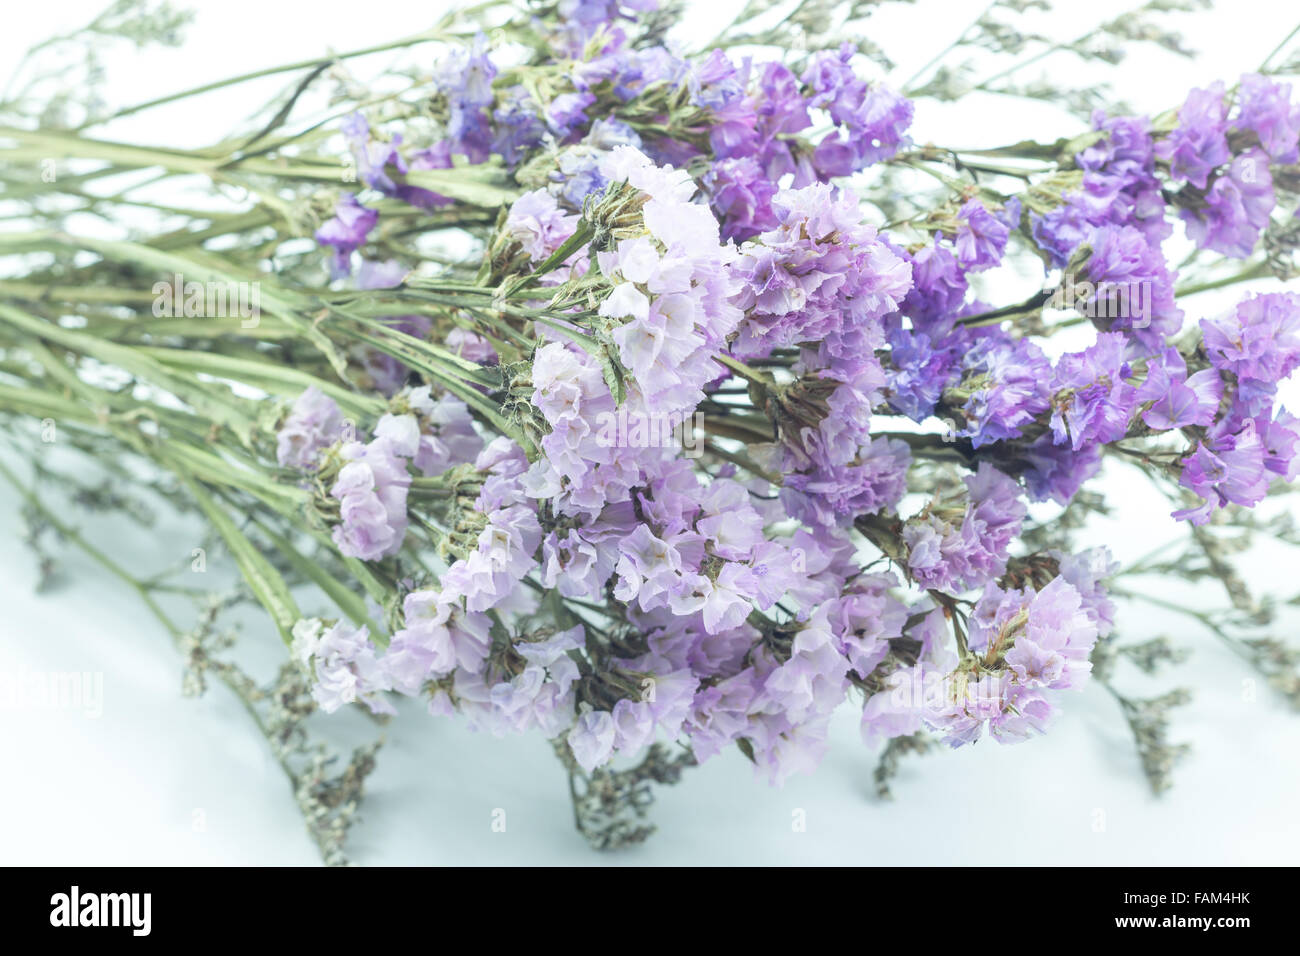 Beautiful Statice Flower Bouquet On White Background Stock Photo